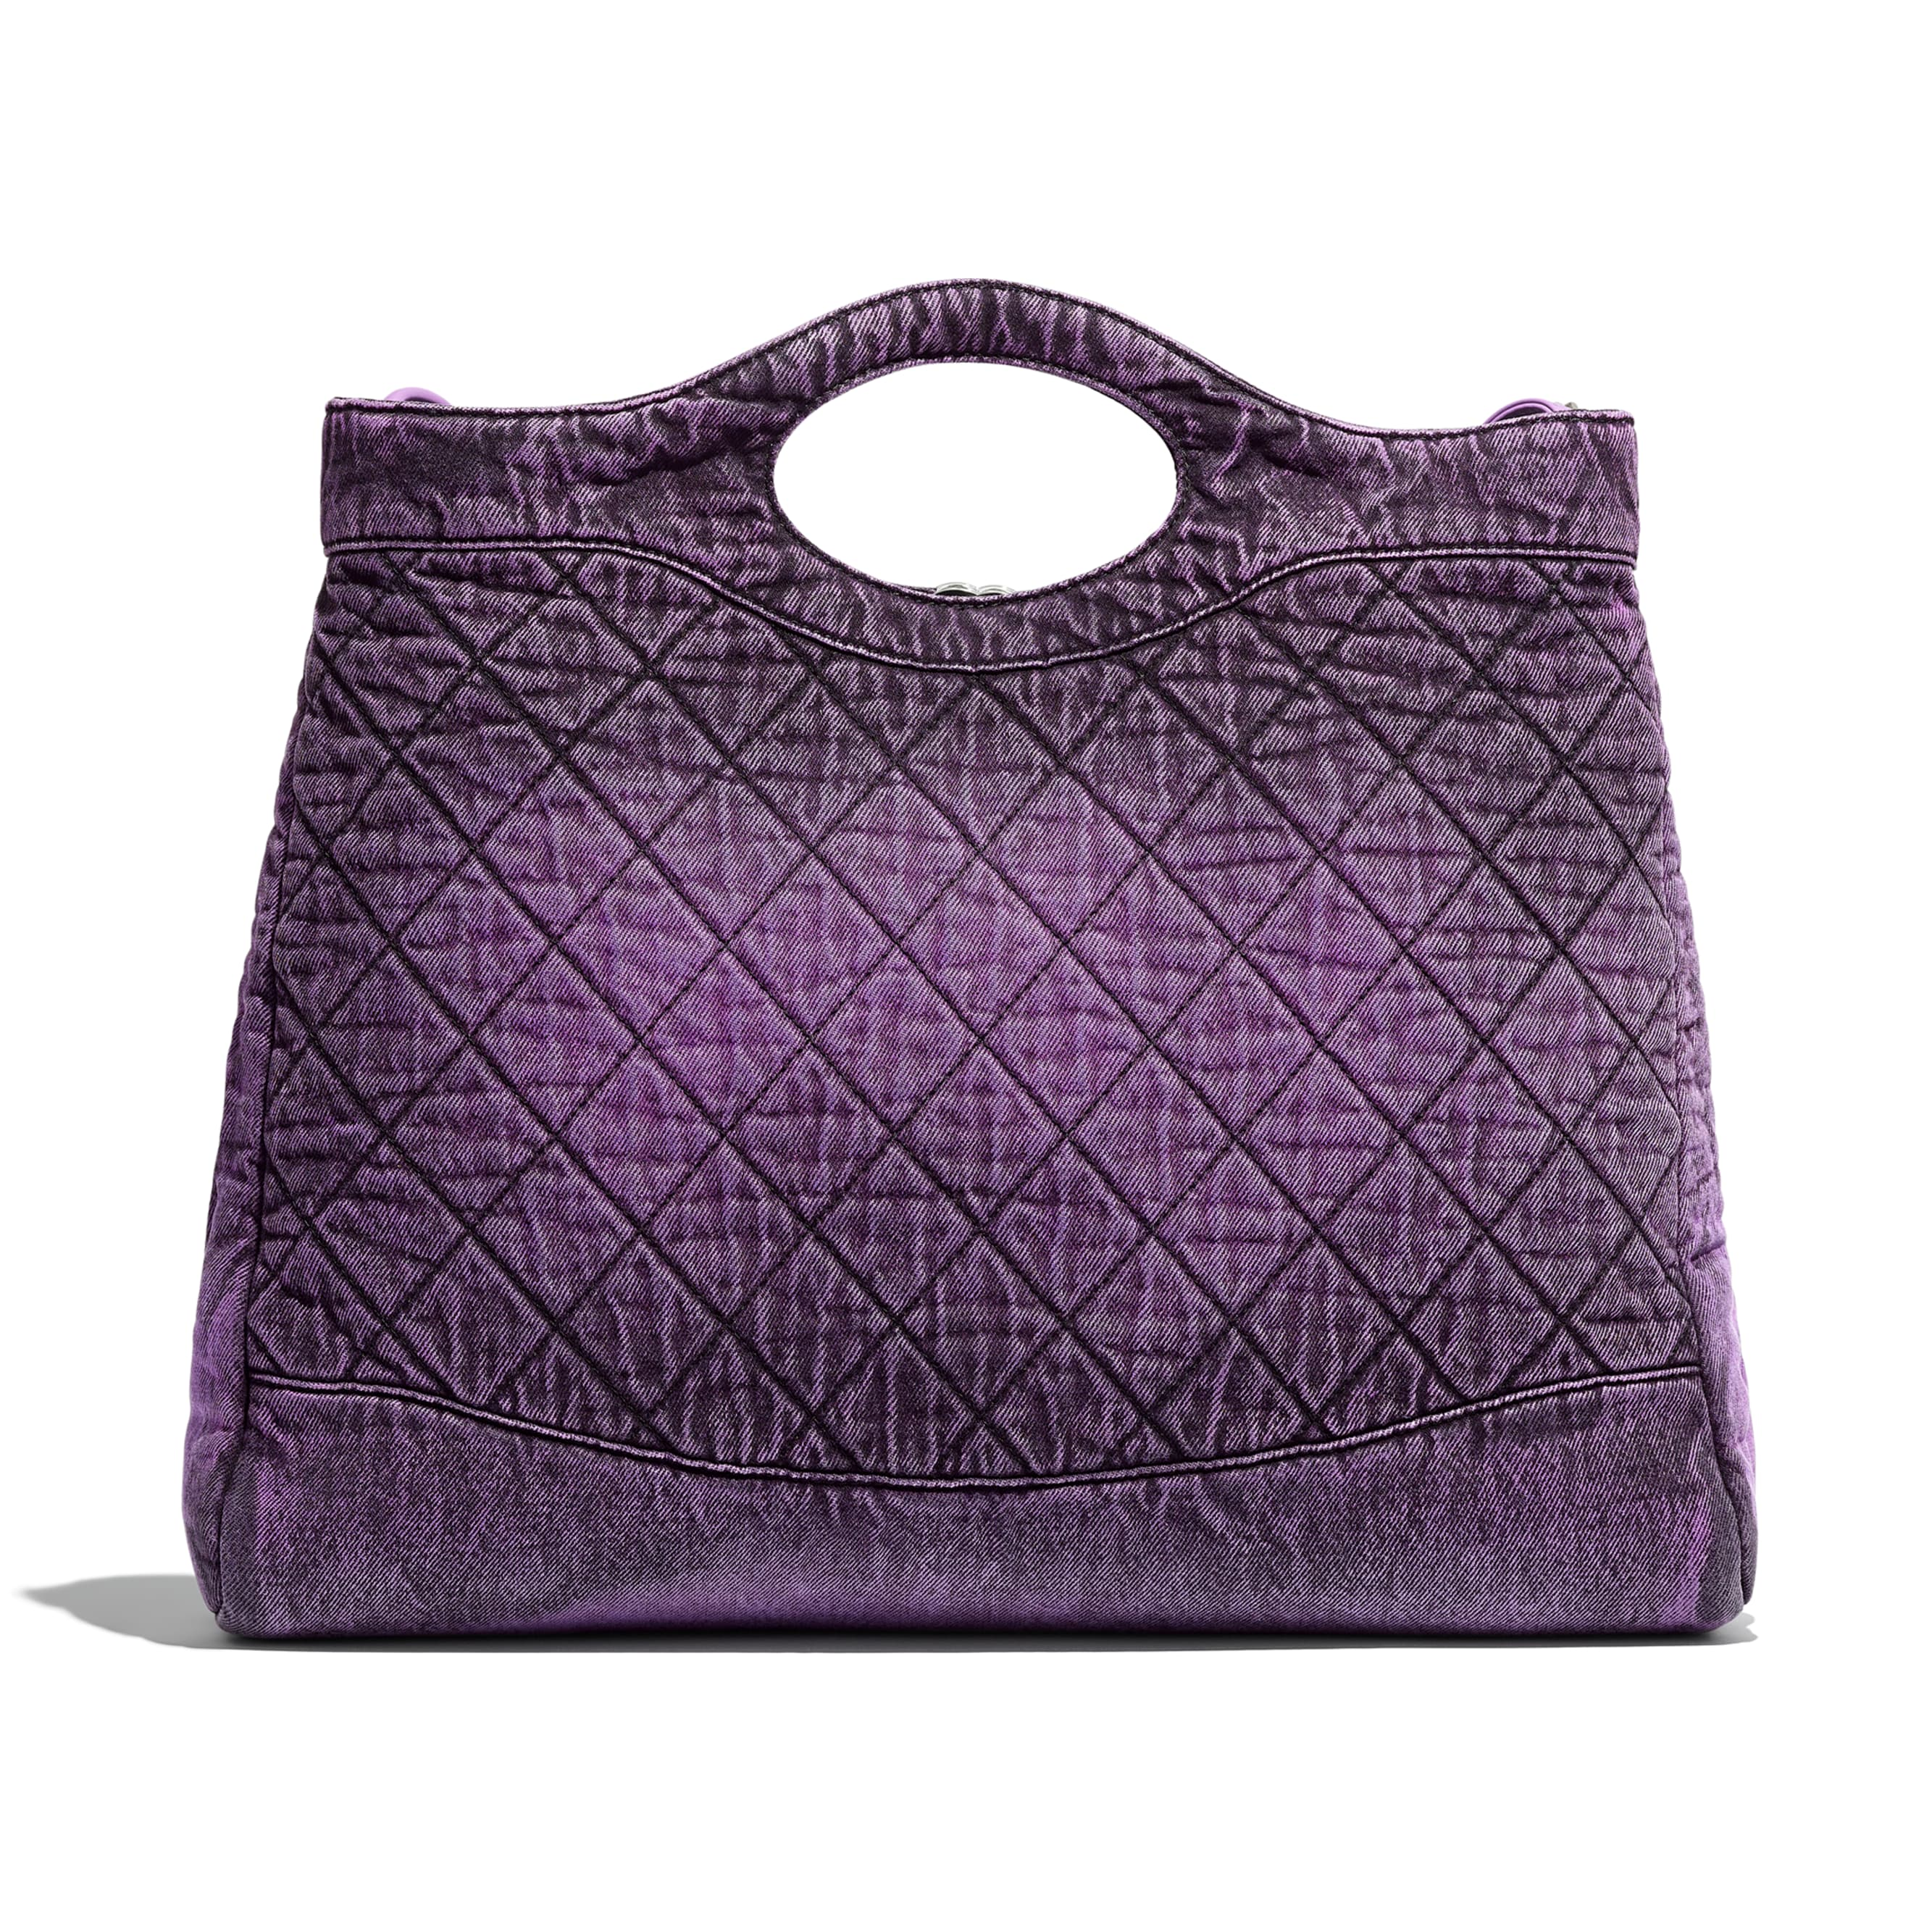 CHANEL 31 Large Shopping Bag - Purple & Black - Denim & Silver-Tone Metal - Alternative view - see standard sized version